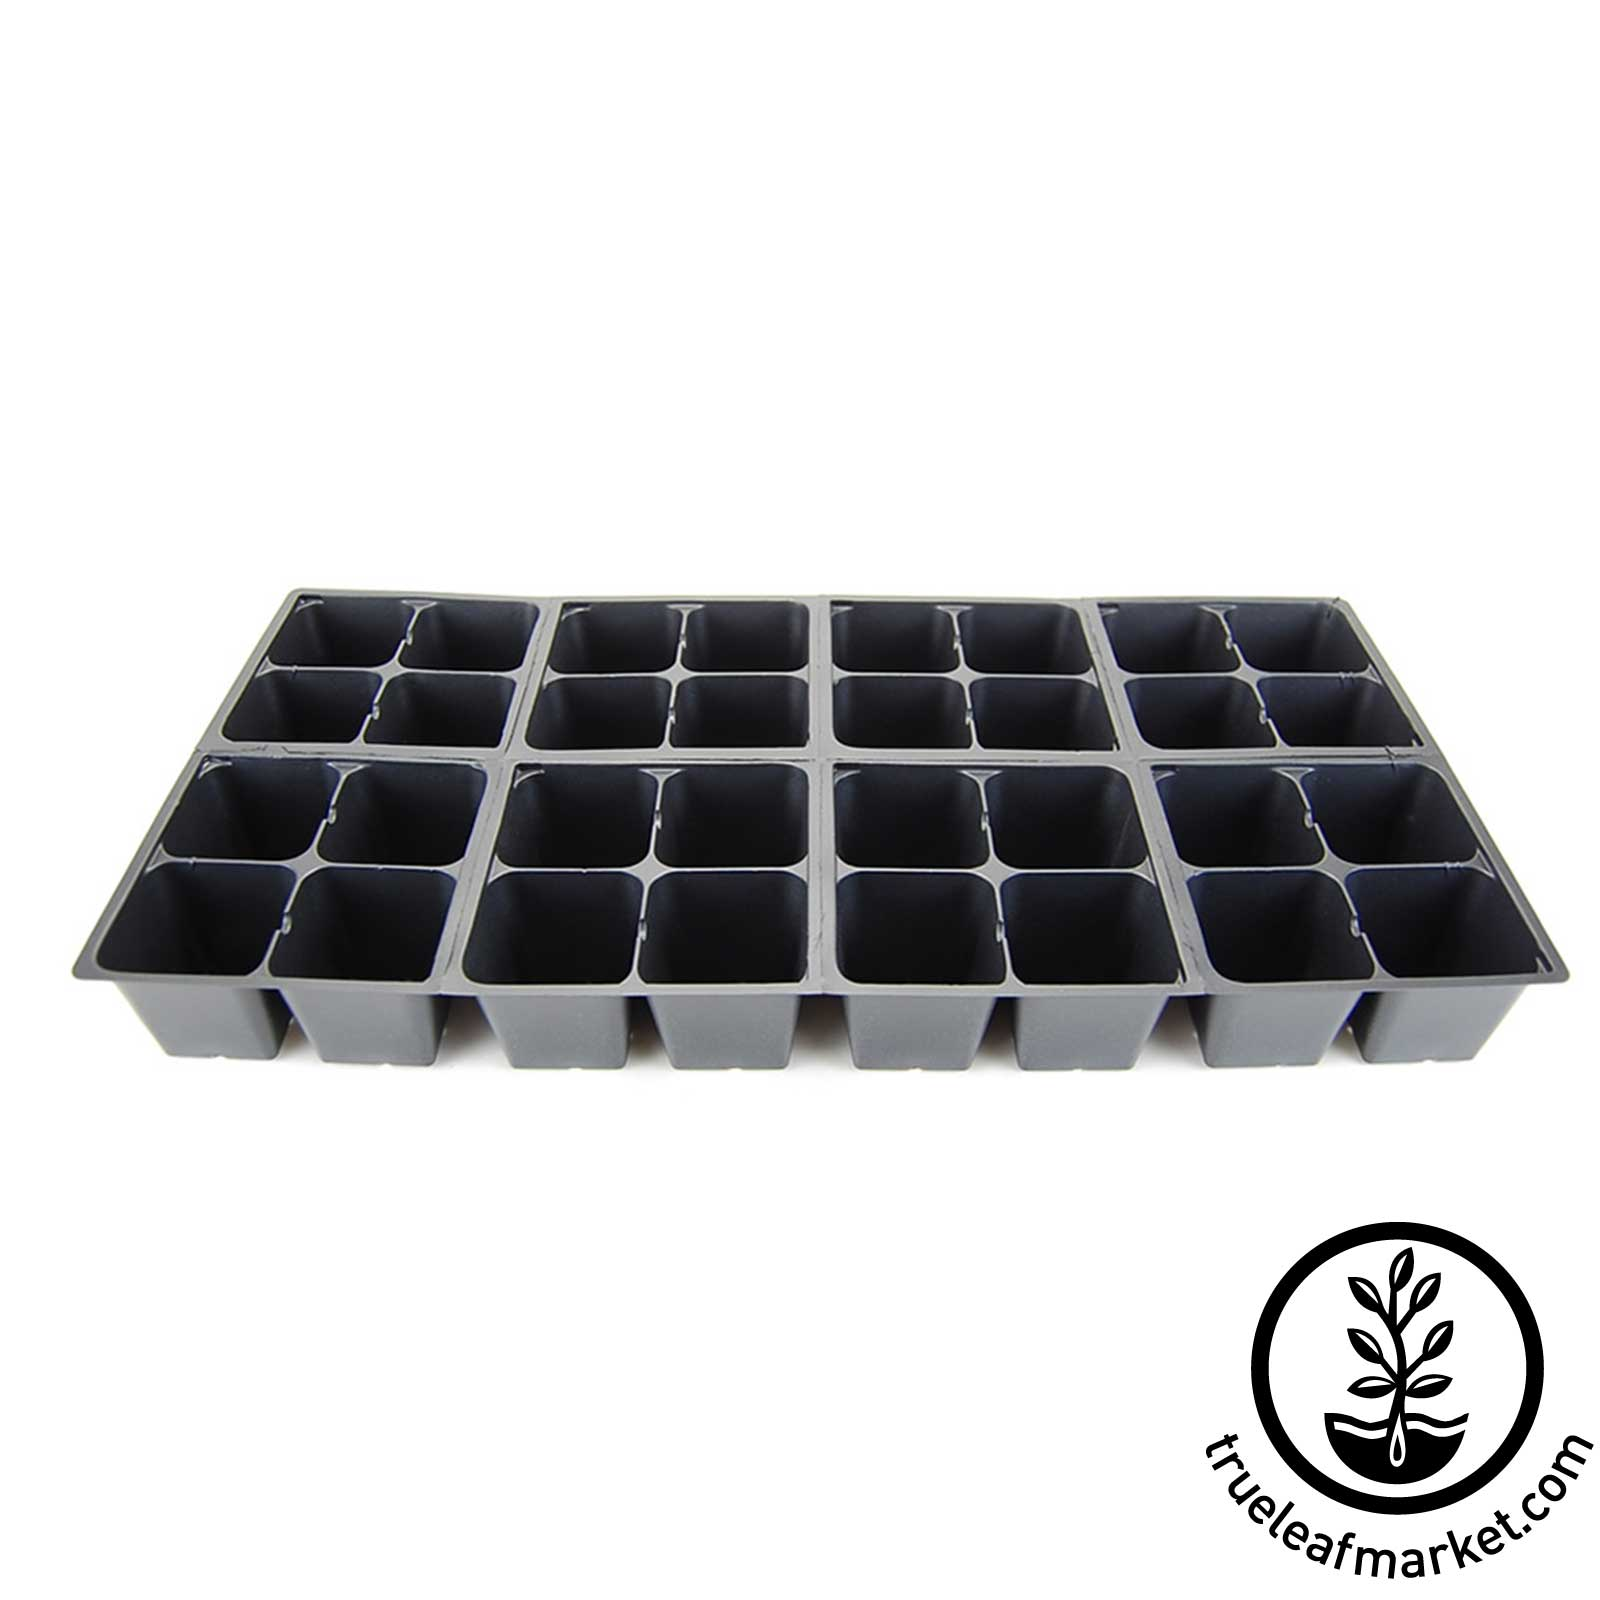 32 Cell Tray Insert (Used with 10x20 Trays)